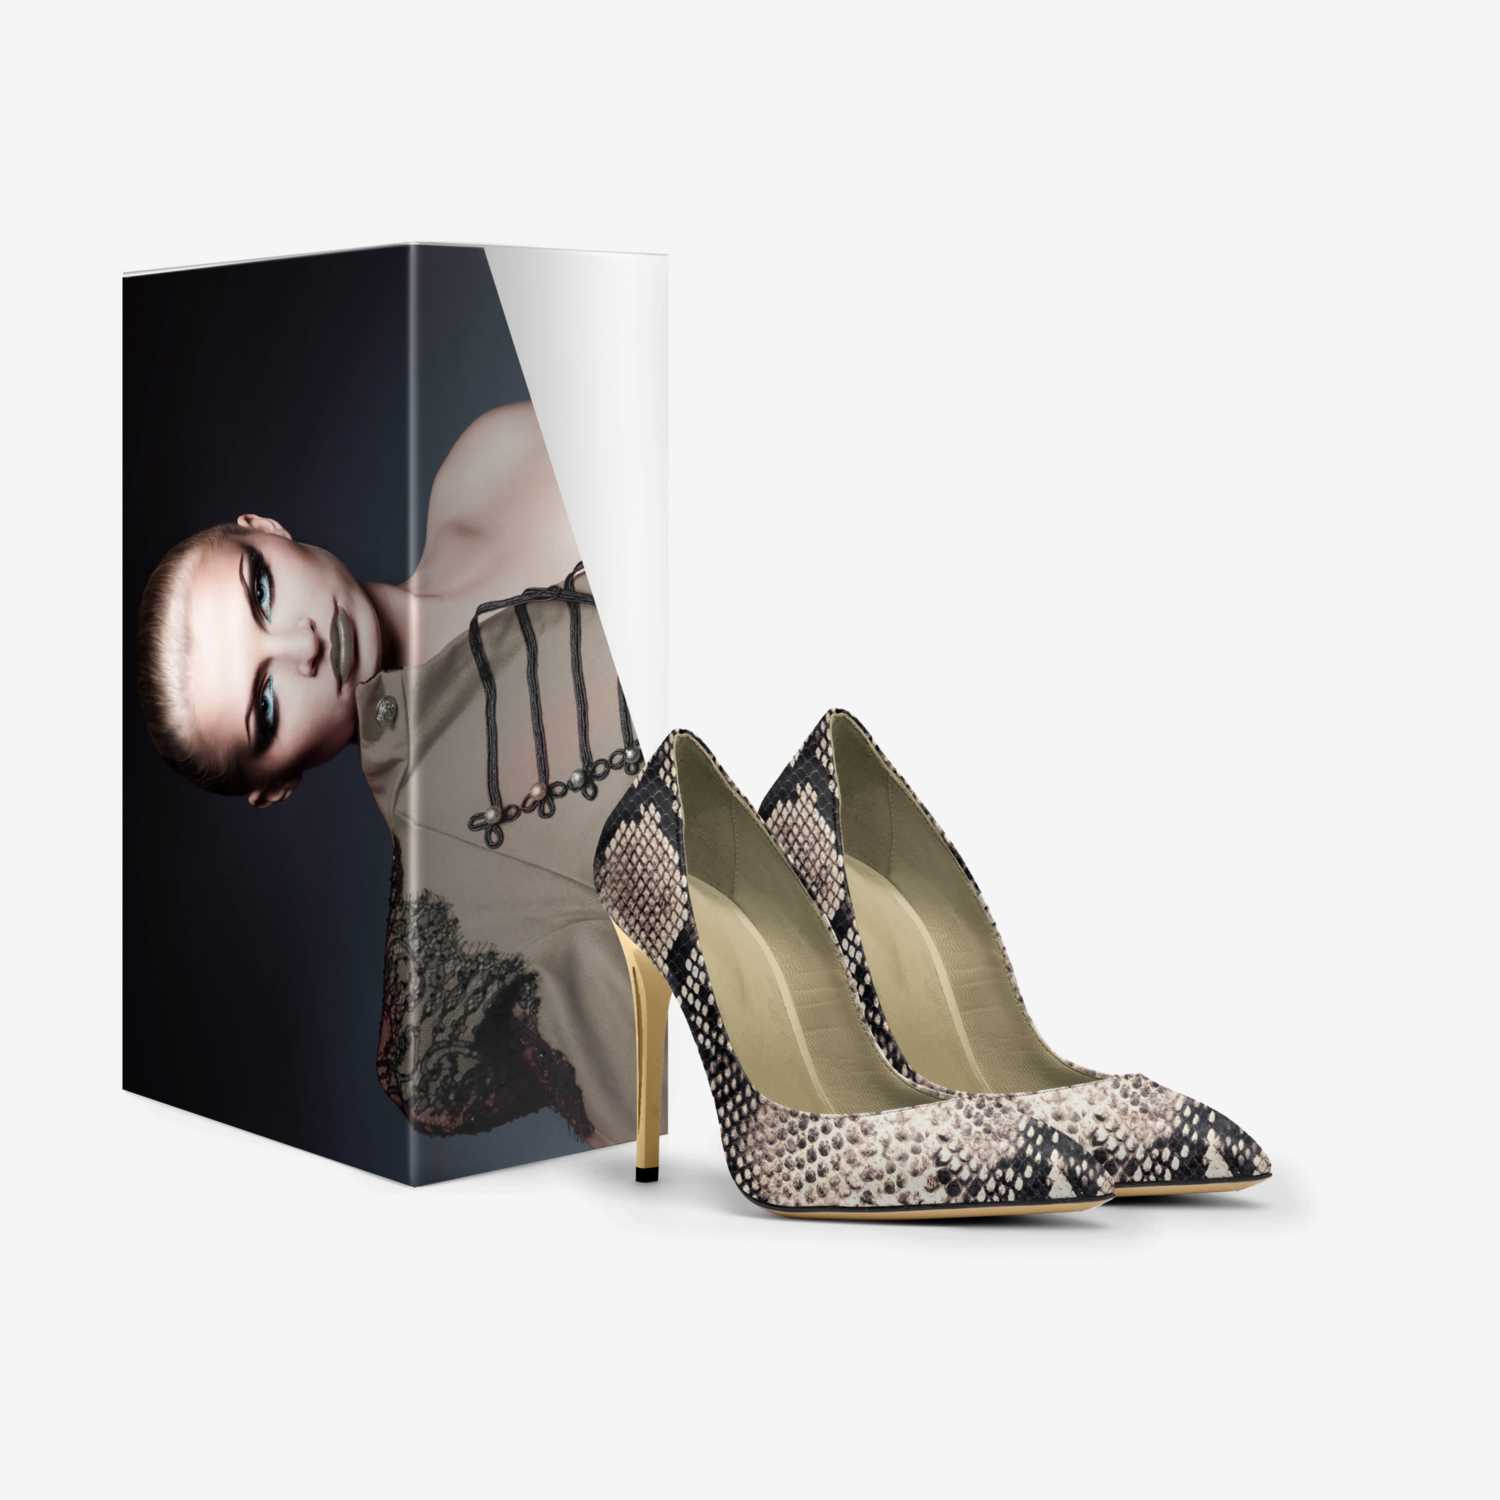 ADDICTION custom made in Italy shoes by Miguel Gonzalez | Box view